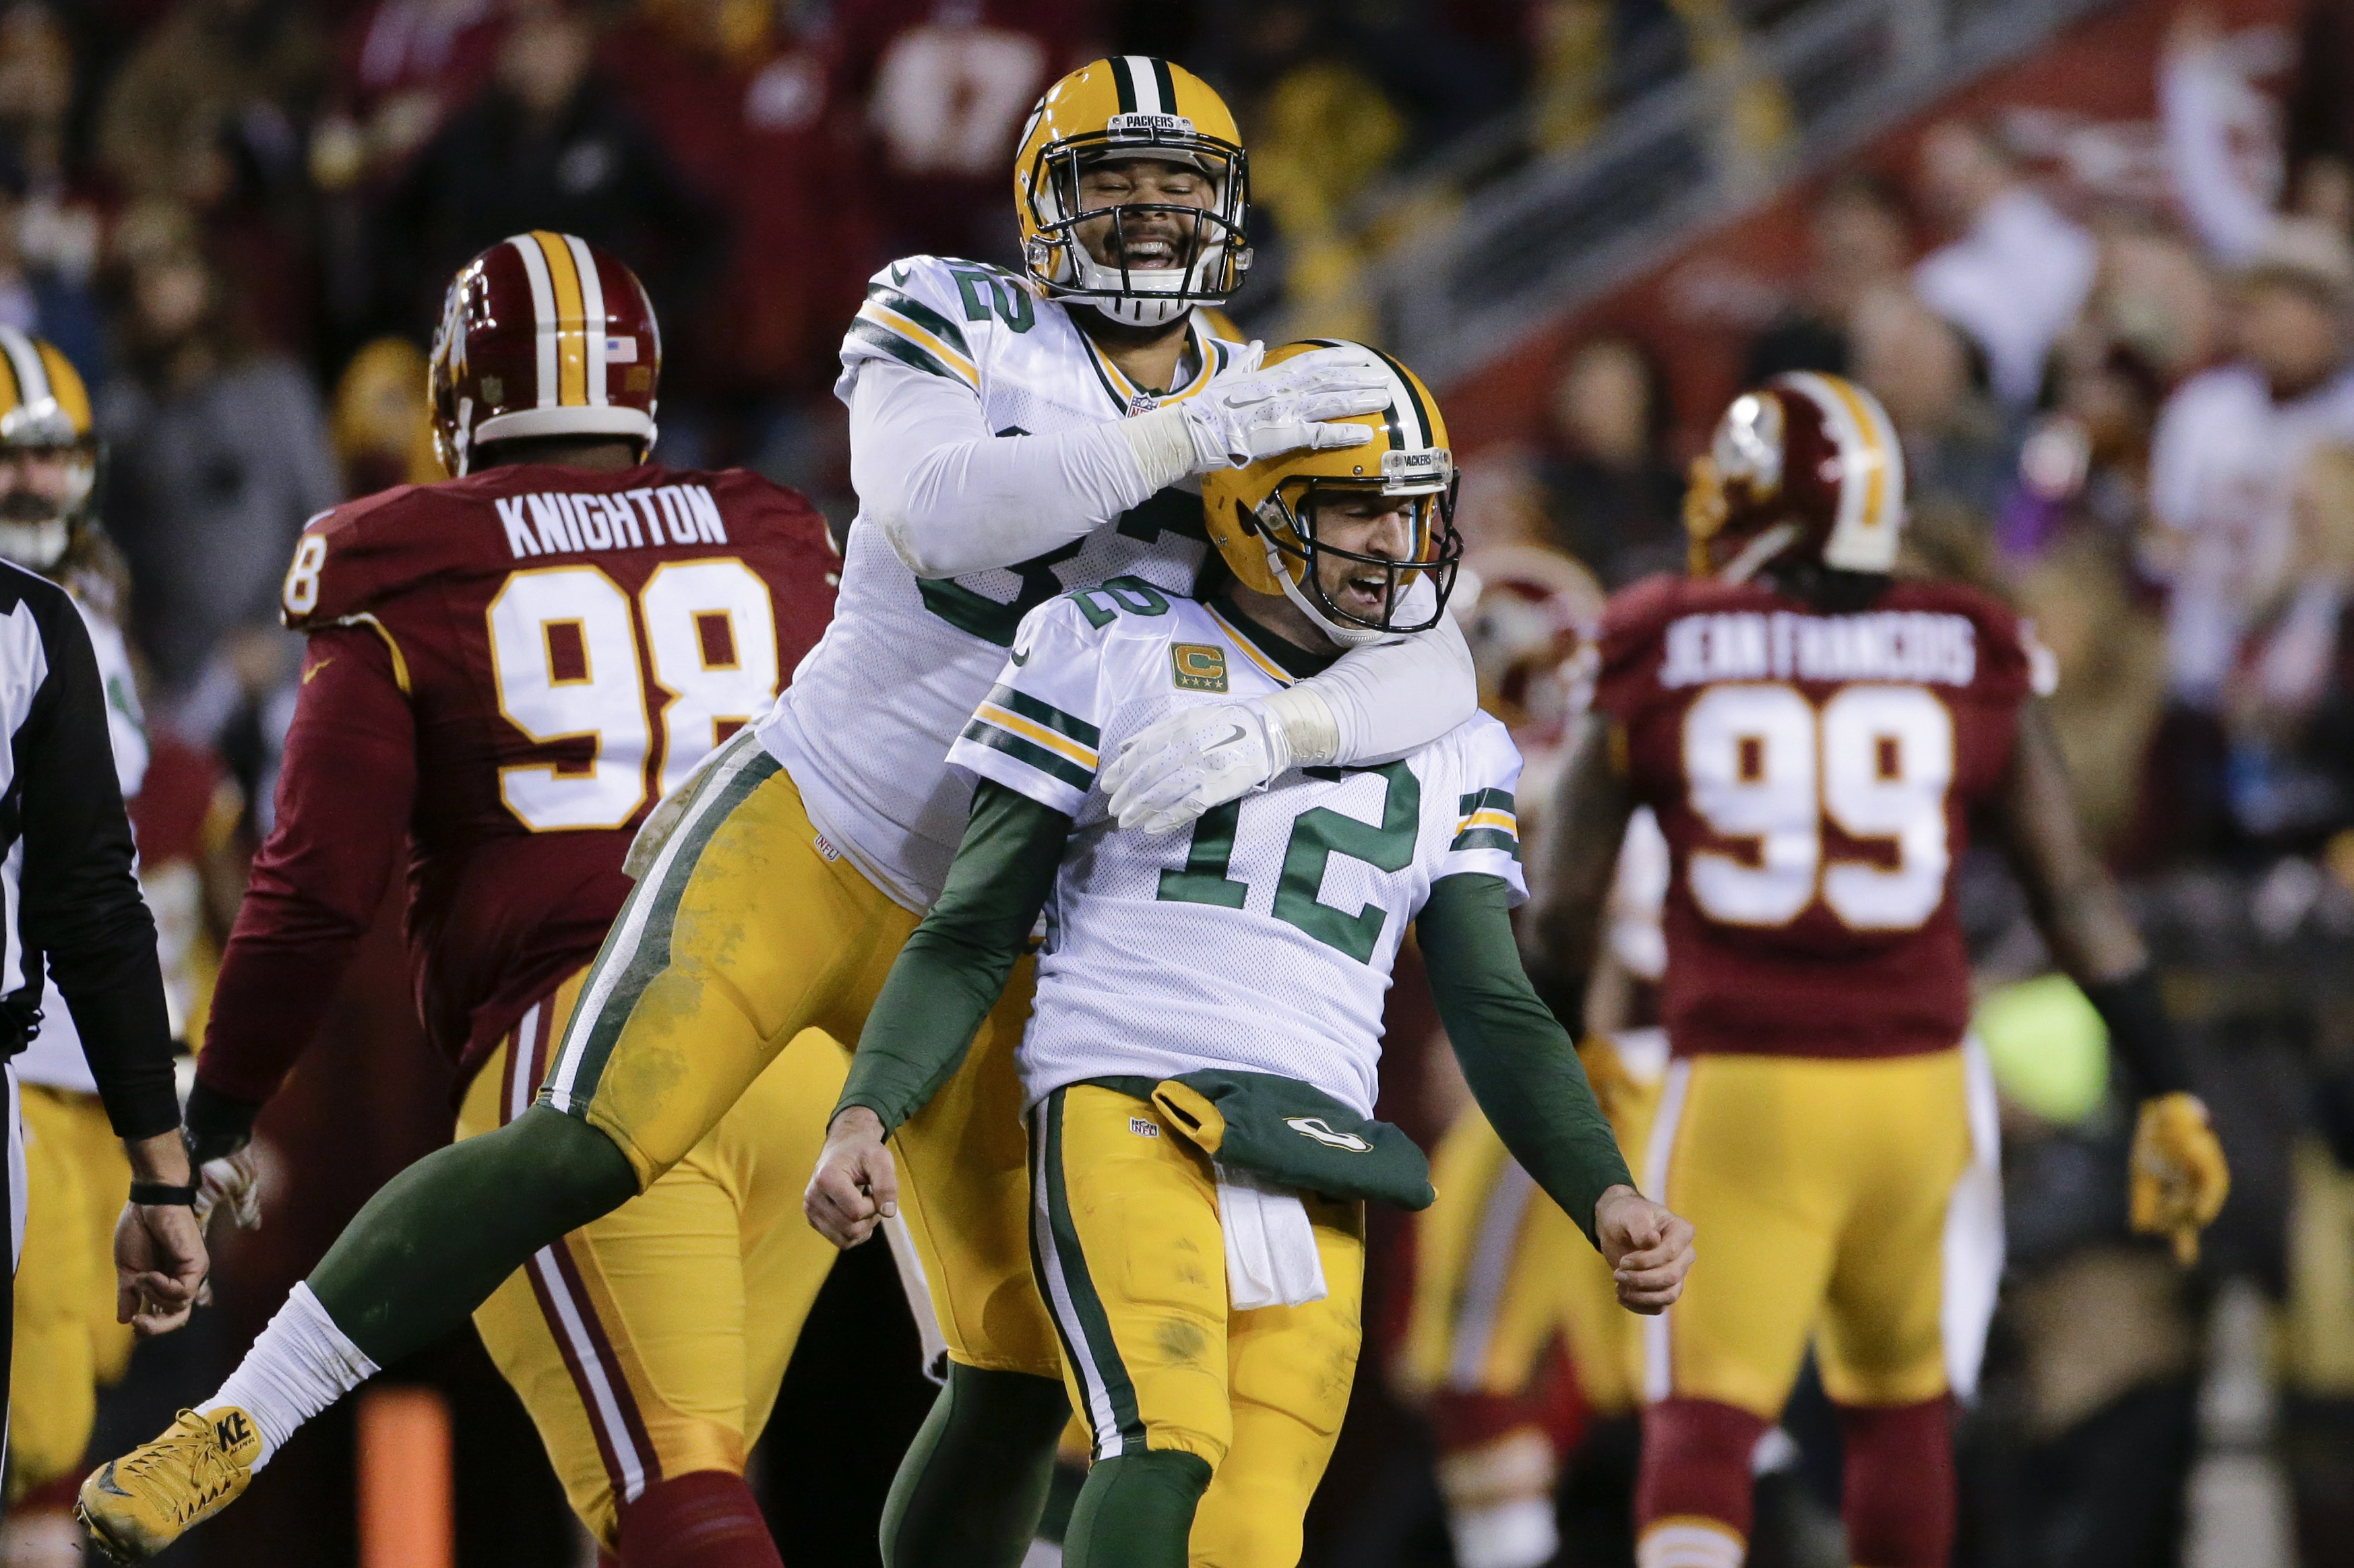 Green Bay Packers tight end Richard Rodgers (82) celebrates with quarterback Aaron Rodgers (12) after wide receiver Davante Adams caught a touchdown pass during the first half of an NFL wild-card playoff football game against the Washington Redskins in La